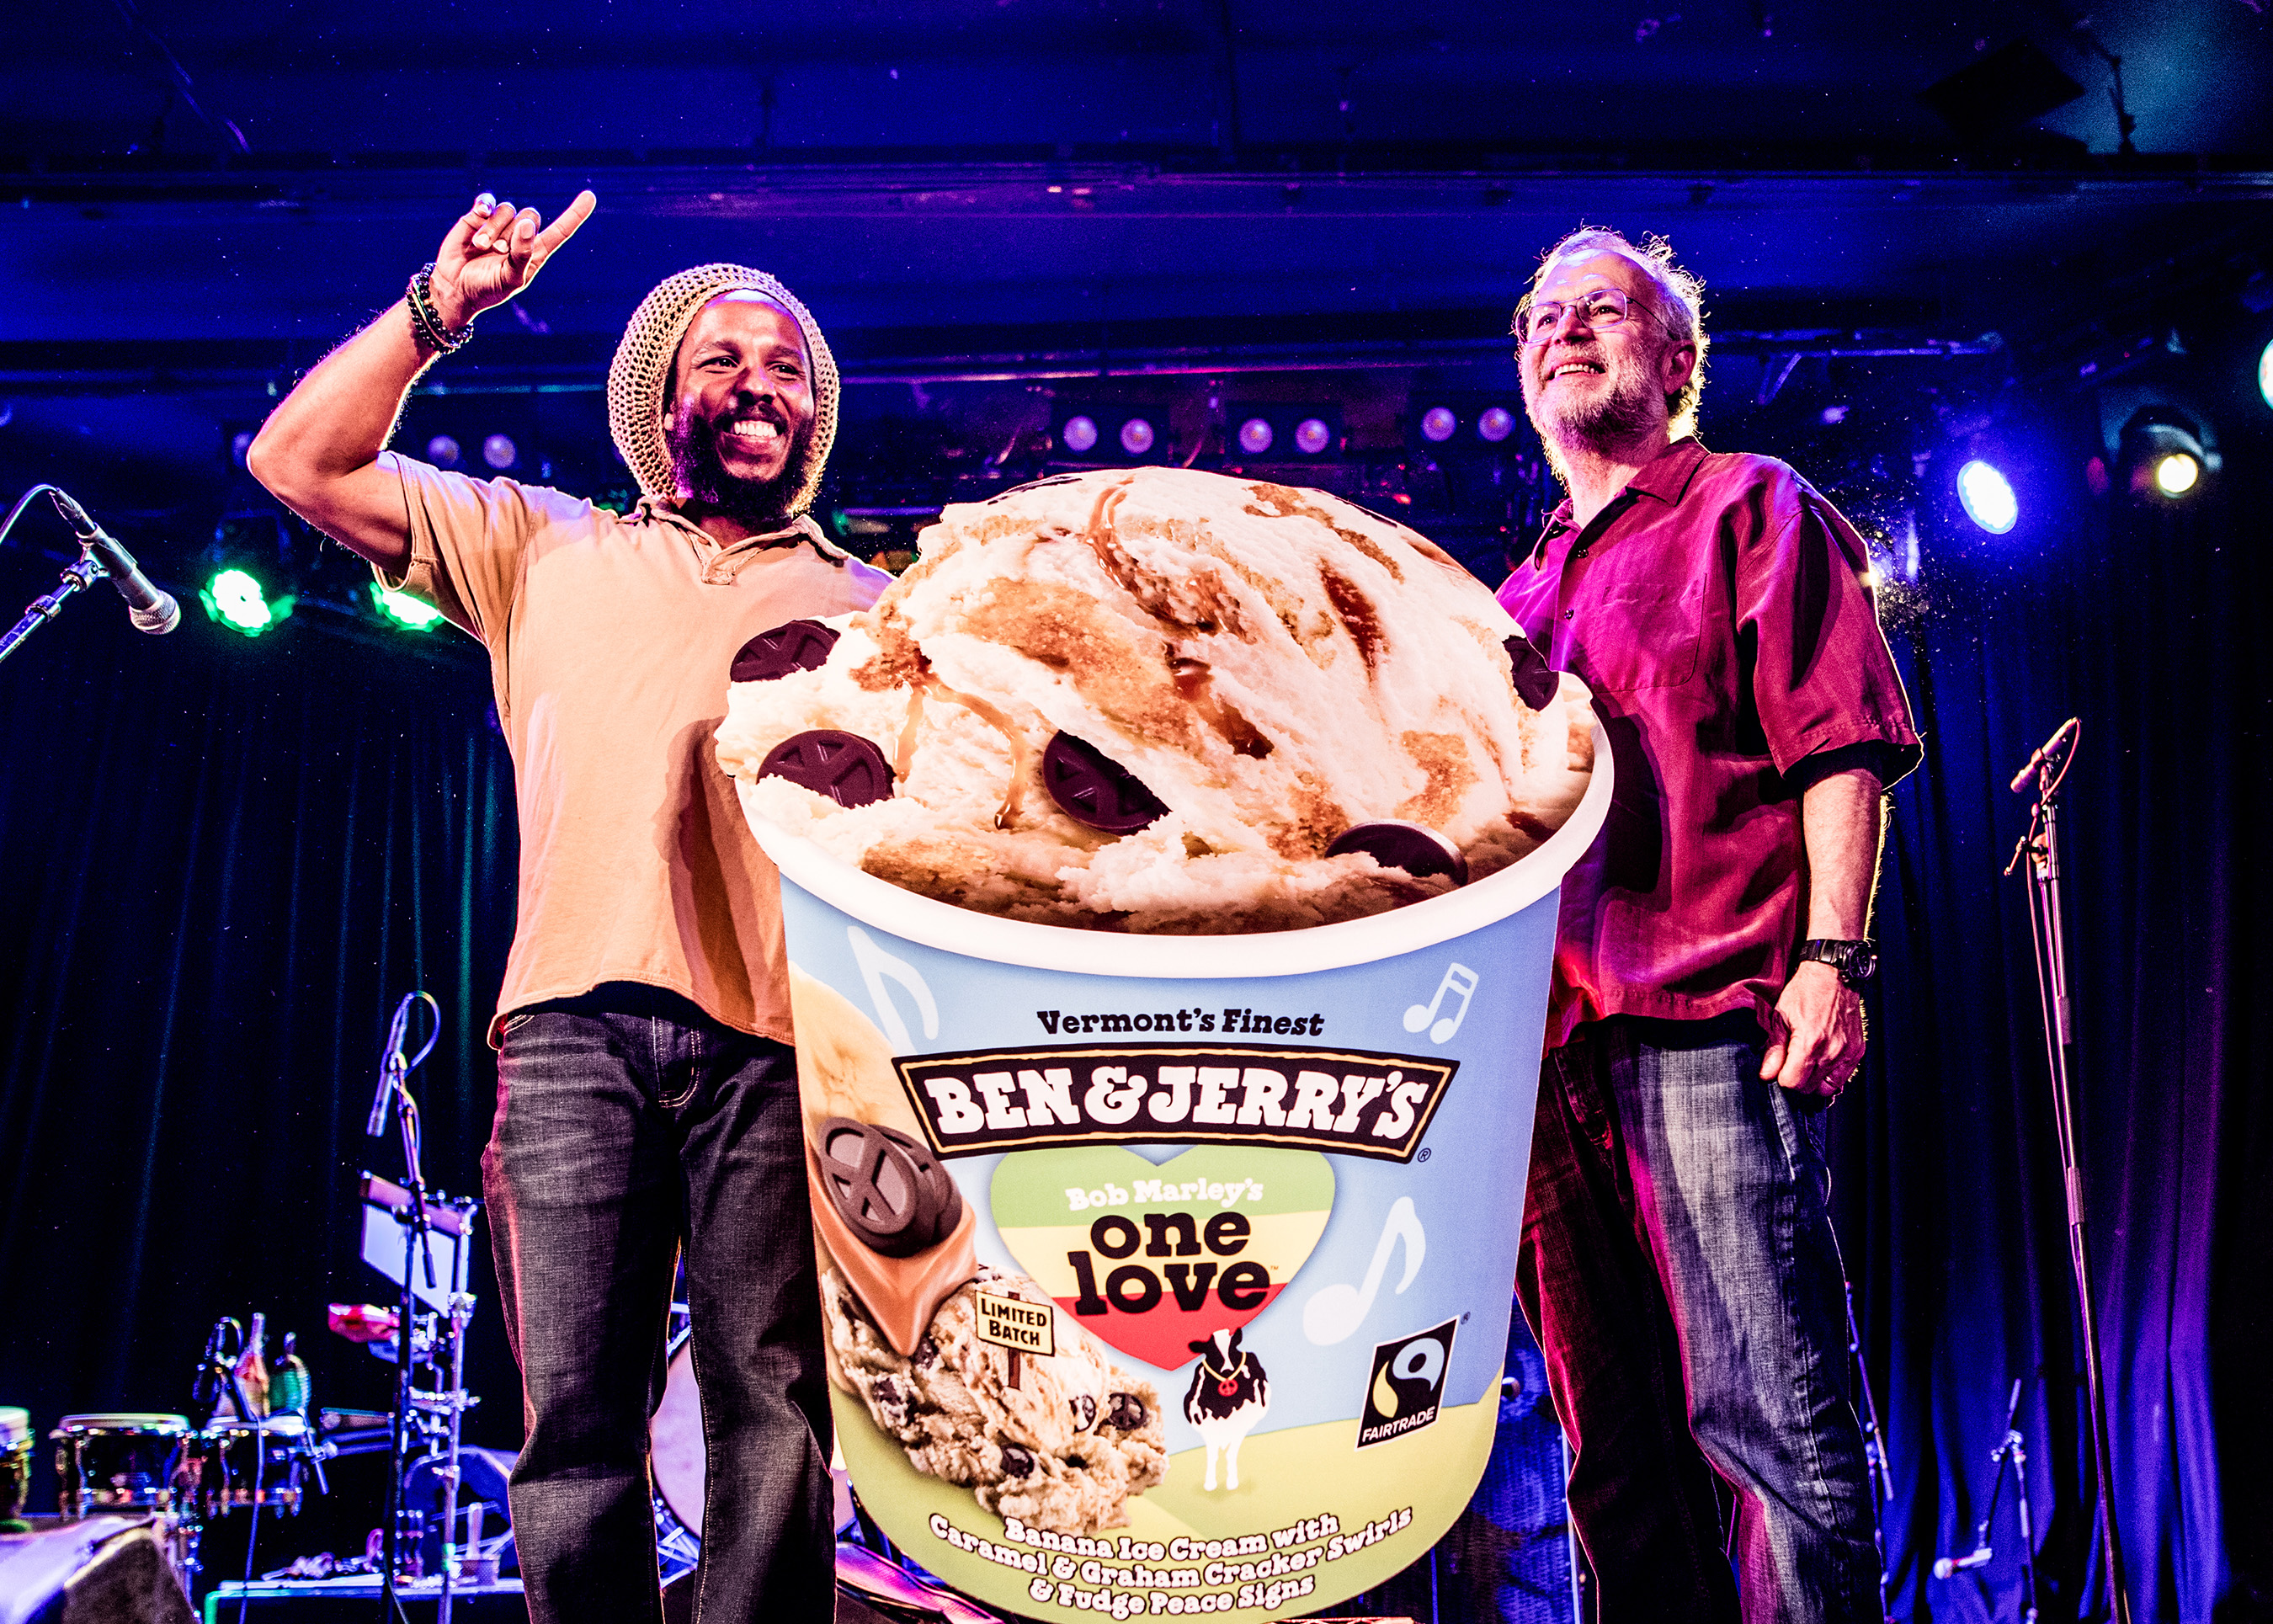 UPDATE: Ben & Jerry's Celebrates Bob Marley's Legacy with One Love Flavor